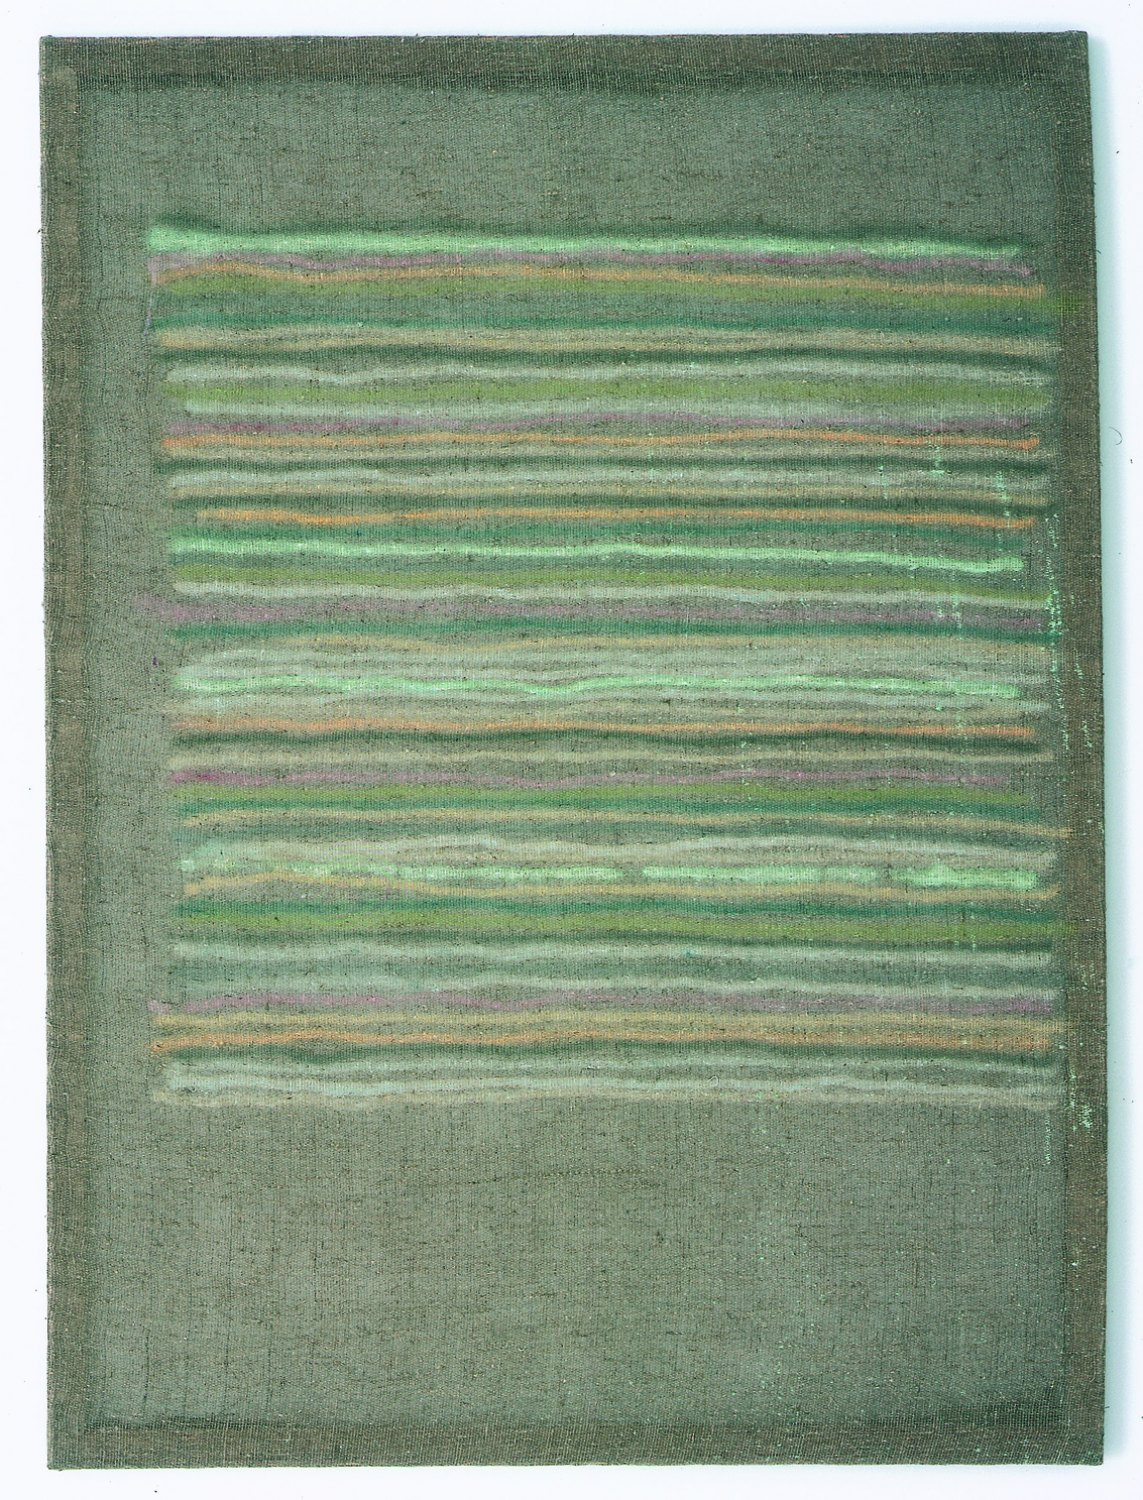 Sergej Jensen Untitled, 2003 Chlorine and paint on burlap, 170 × 125 cm